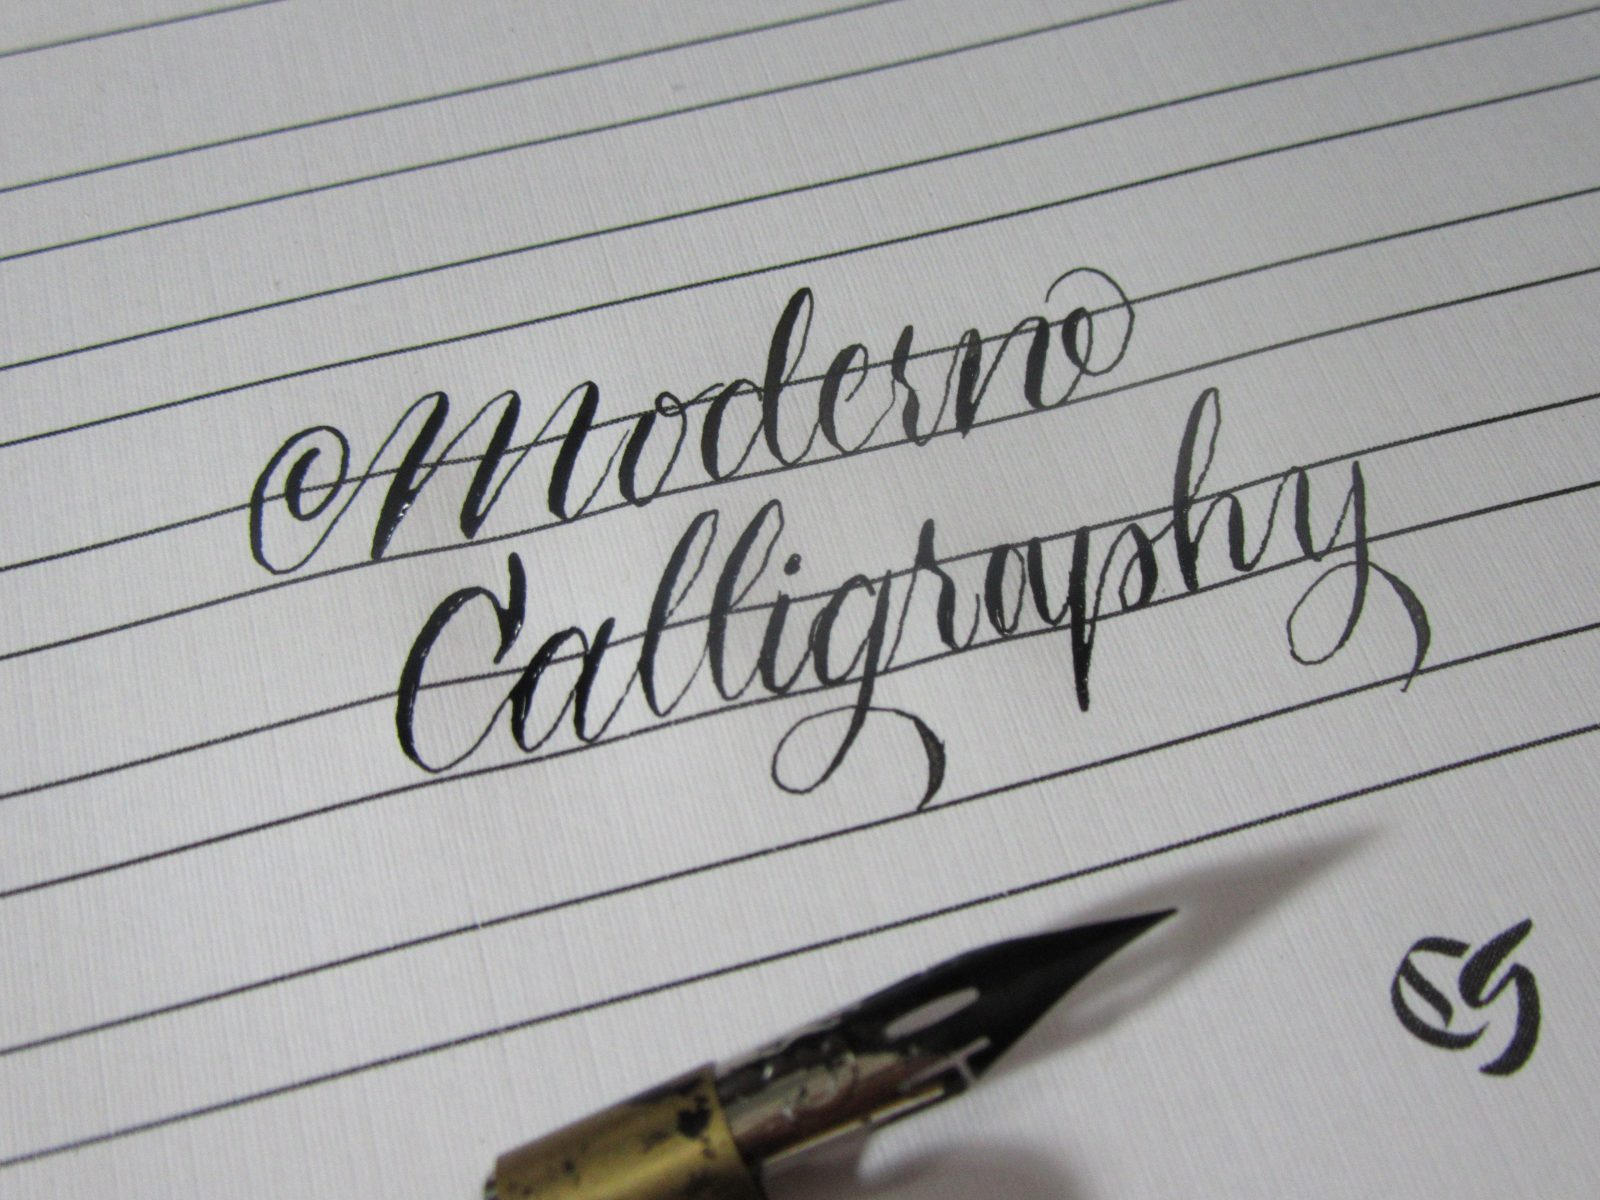 Modern Calligraphy Writing Example with pen